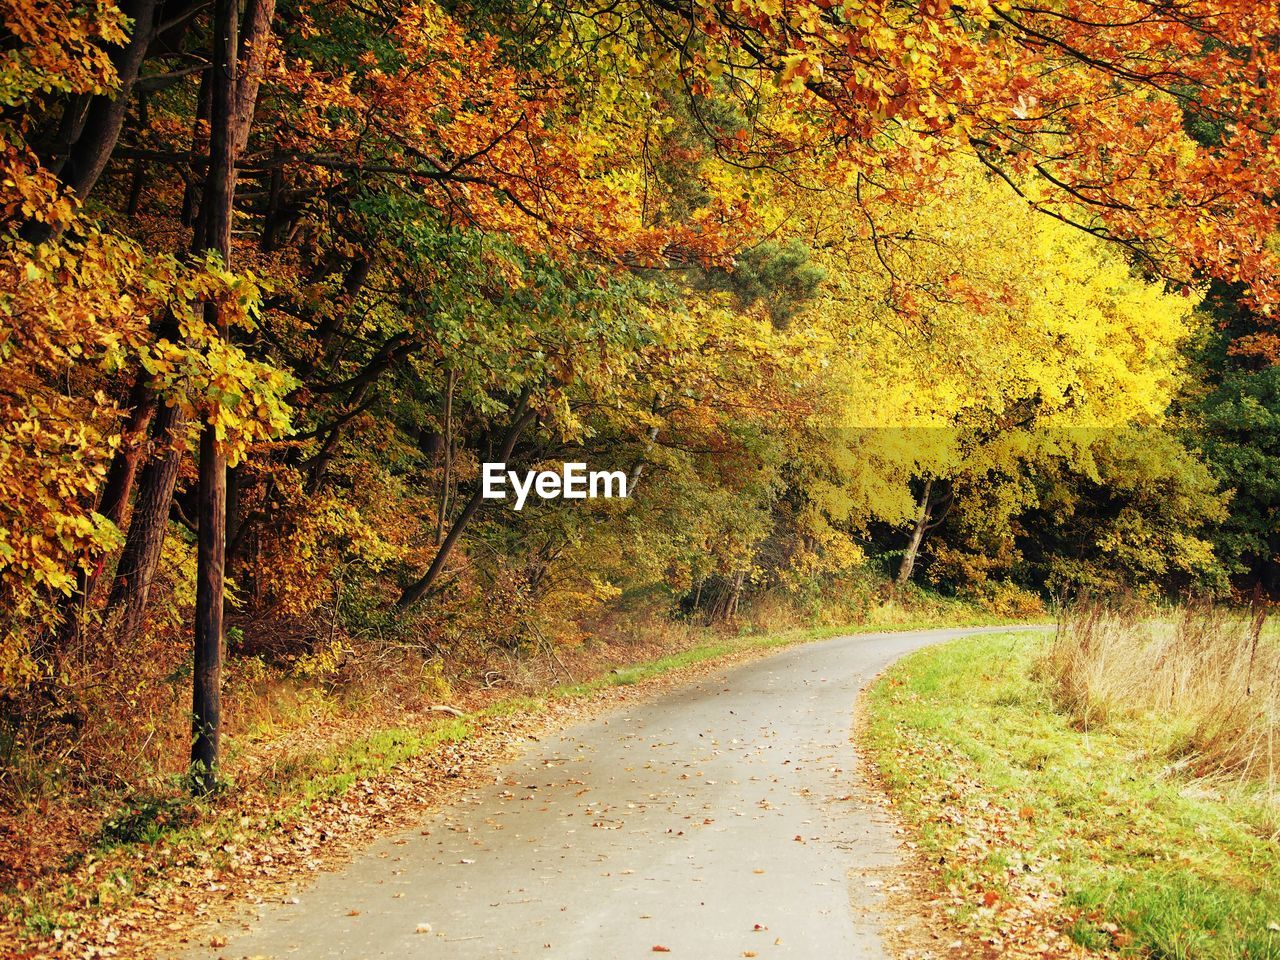 autumn, tree, nature, beauty in nature, scenics, change, tranquility, growth, tranquil scene, the way forward, leaf, no people, landscape, road, day, outdoors, forest